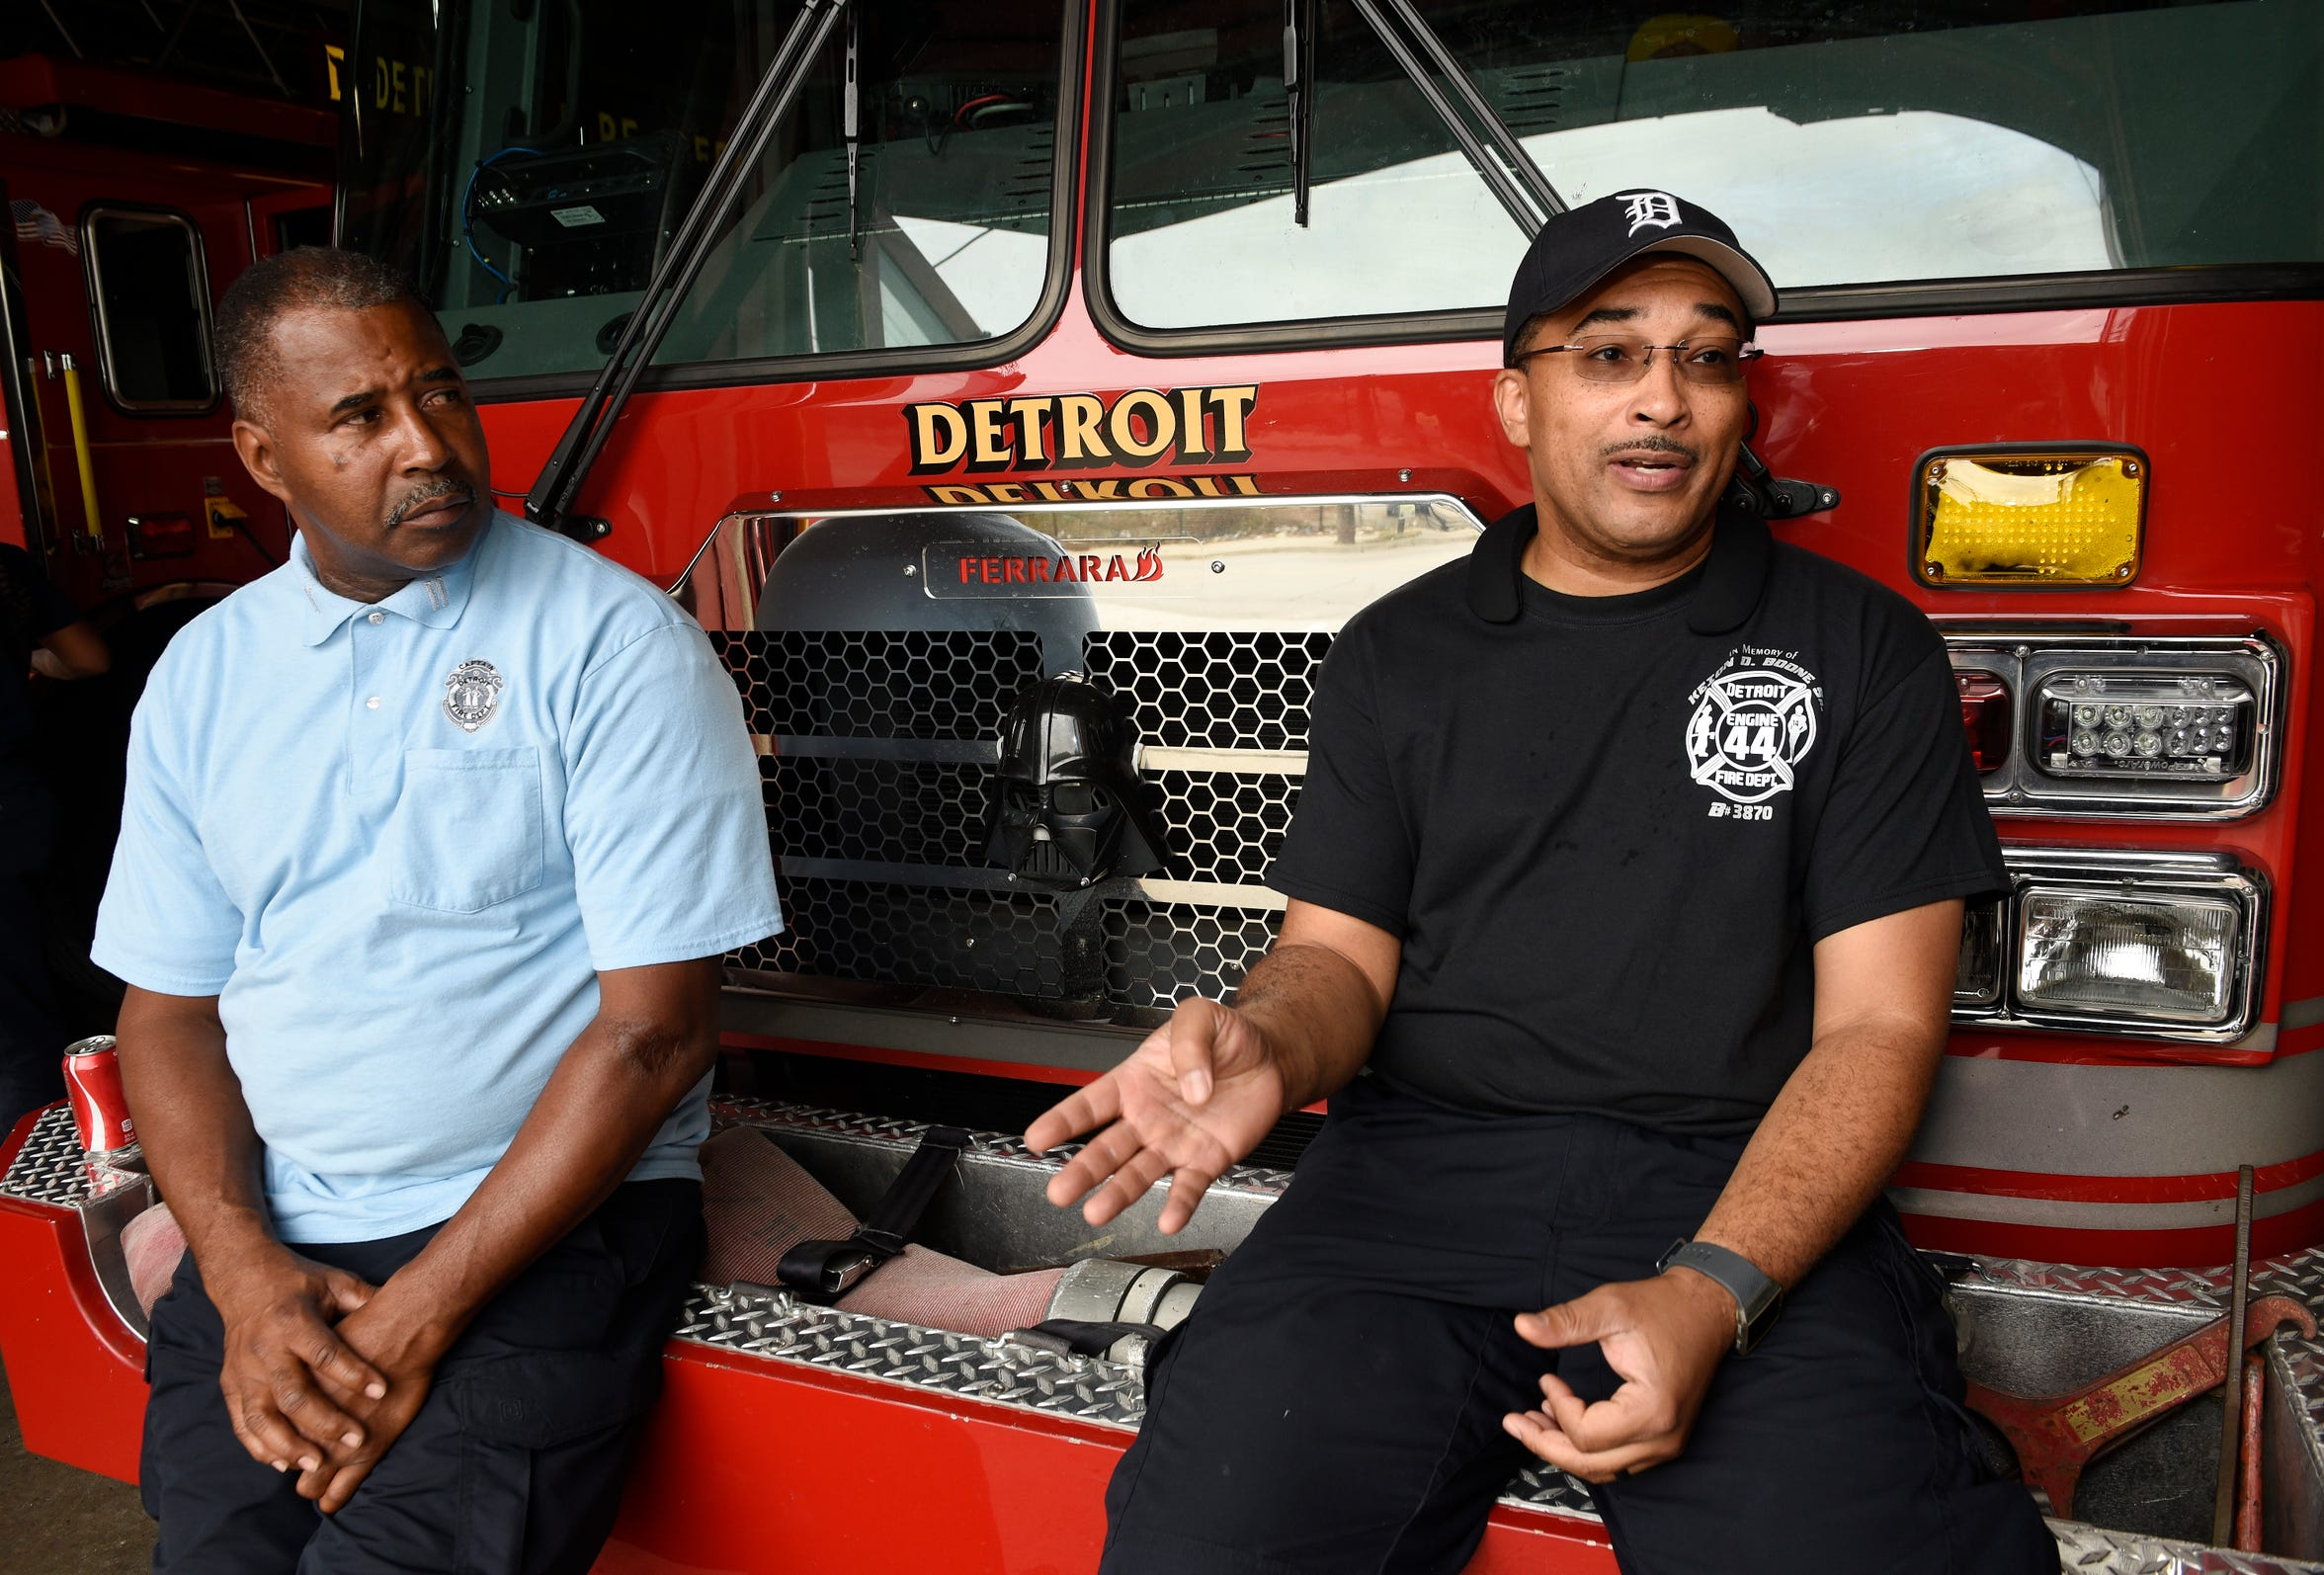 Fire Capt. Dexter Dixon, left, and firefighter Darrell Tucker talk about being on the frontlines of the opioid crisis in Detroit.